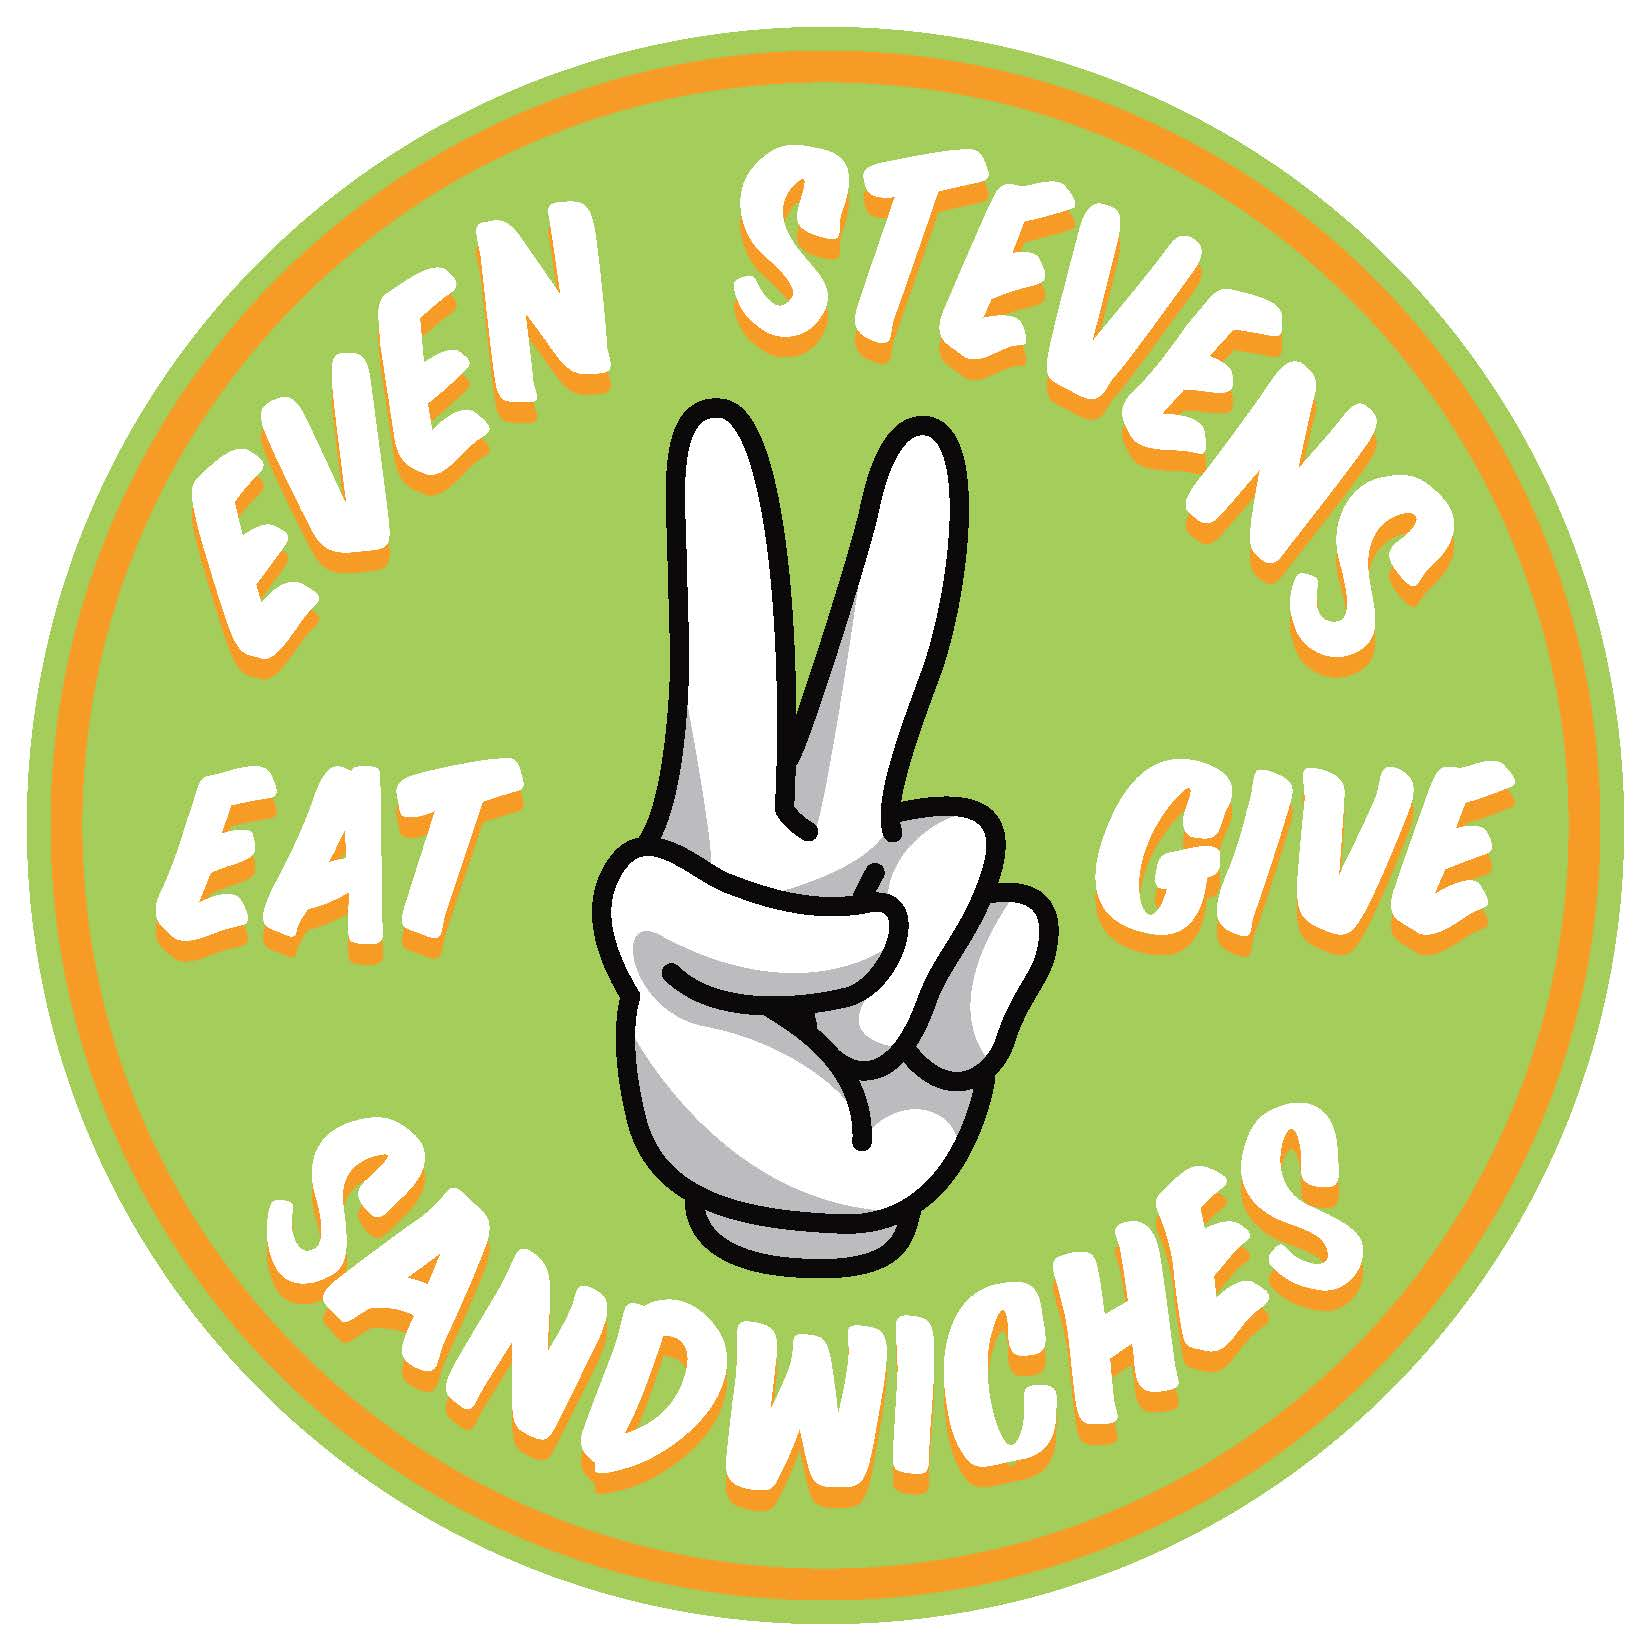 Even Stevens Sandwiches logo